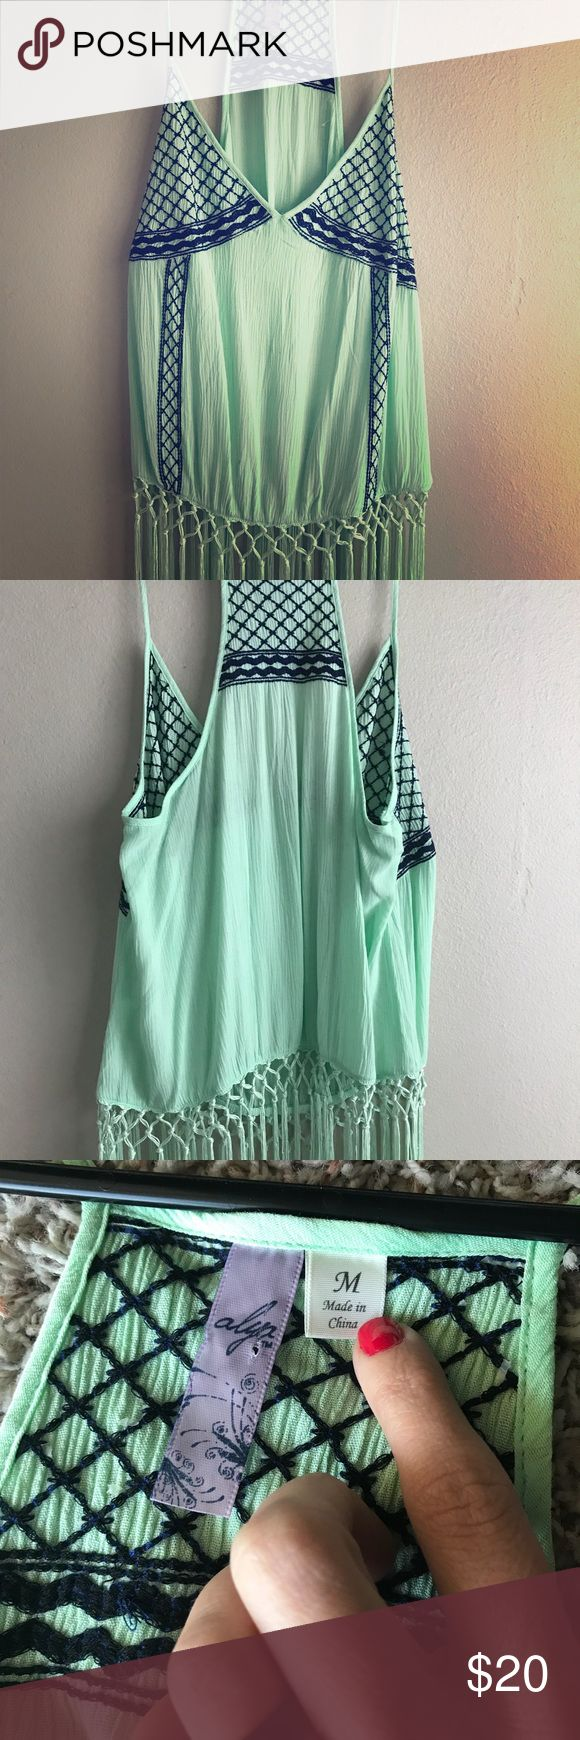 Mint green fringe cami top This top is 100% rayon with royal blue embroidery and mint green fringe. It is a perfect summer cami! Tops Camisoles